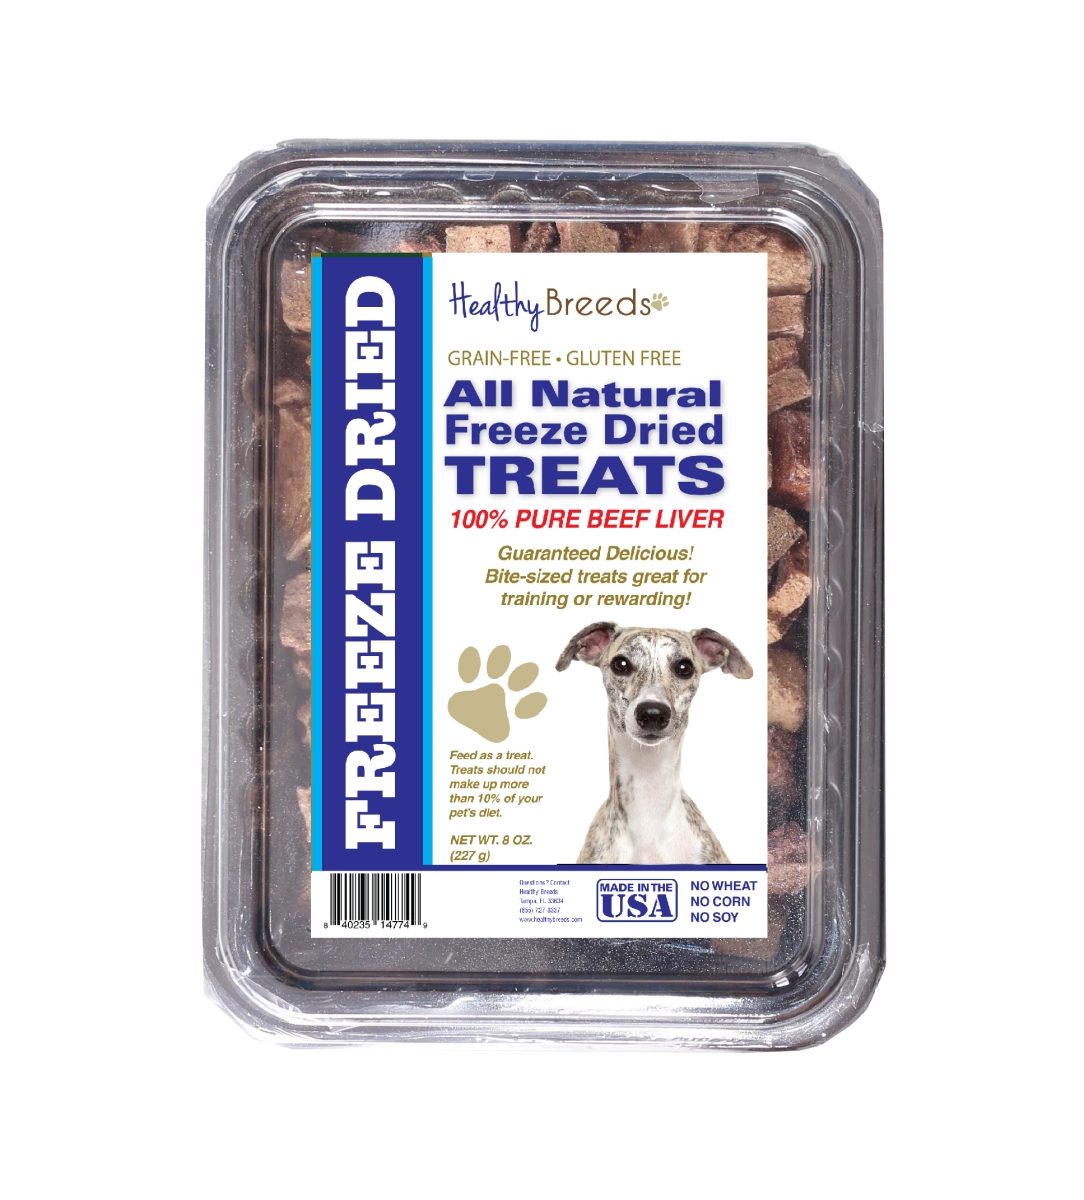 Healthy Breeds 840235147367 10 oz Whippet All Natural Freeze Dried Treats Beef Liver